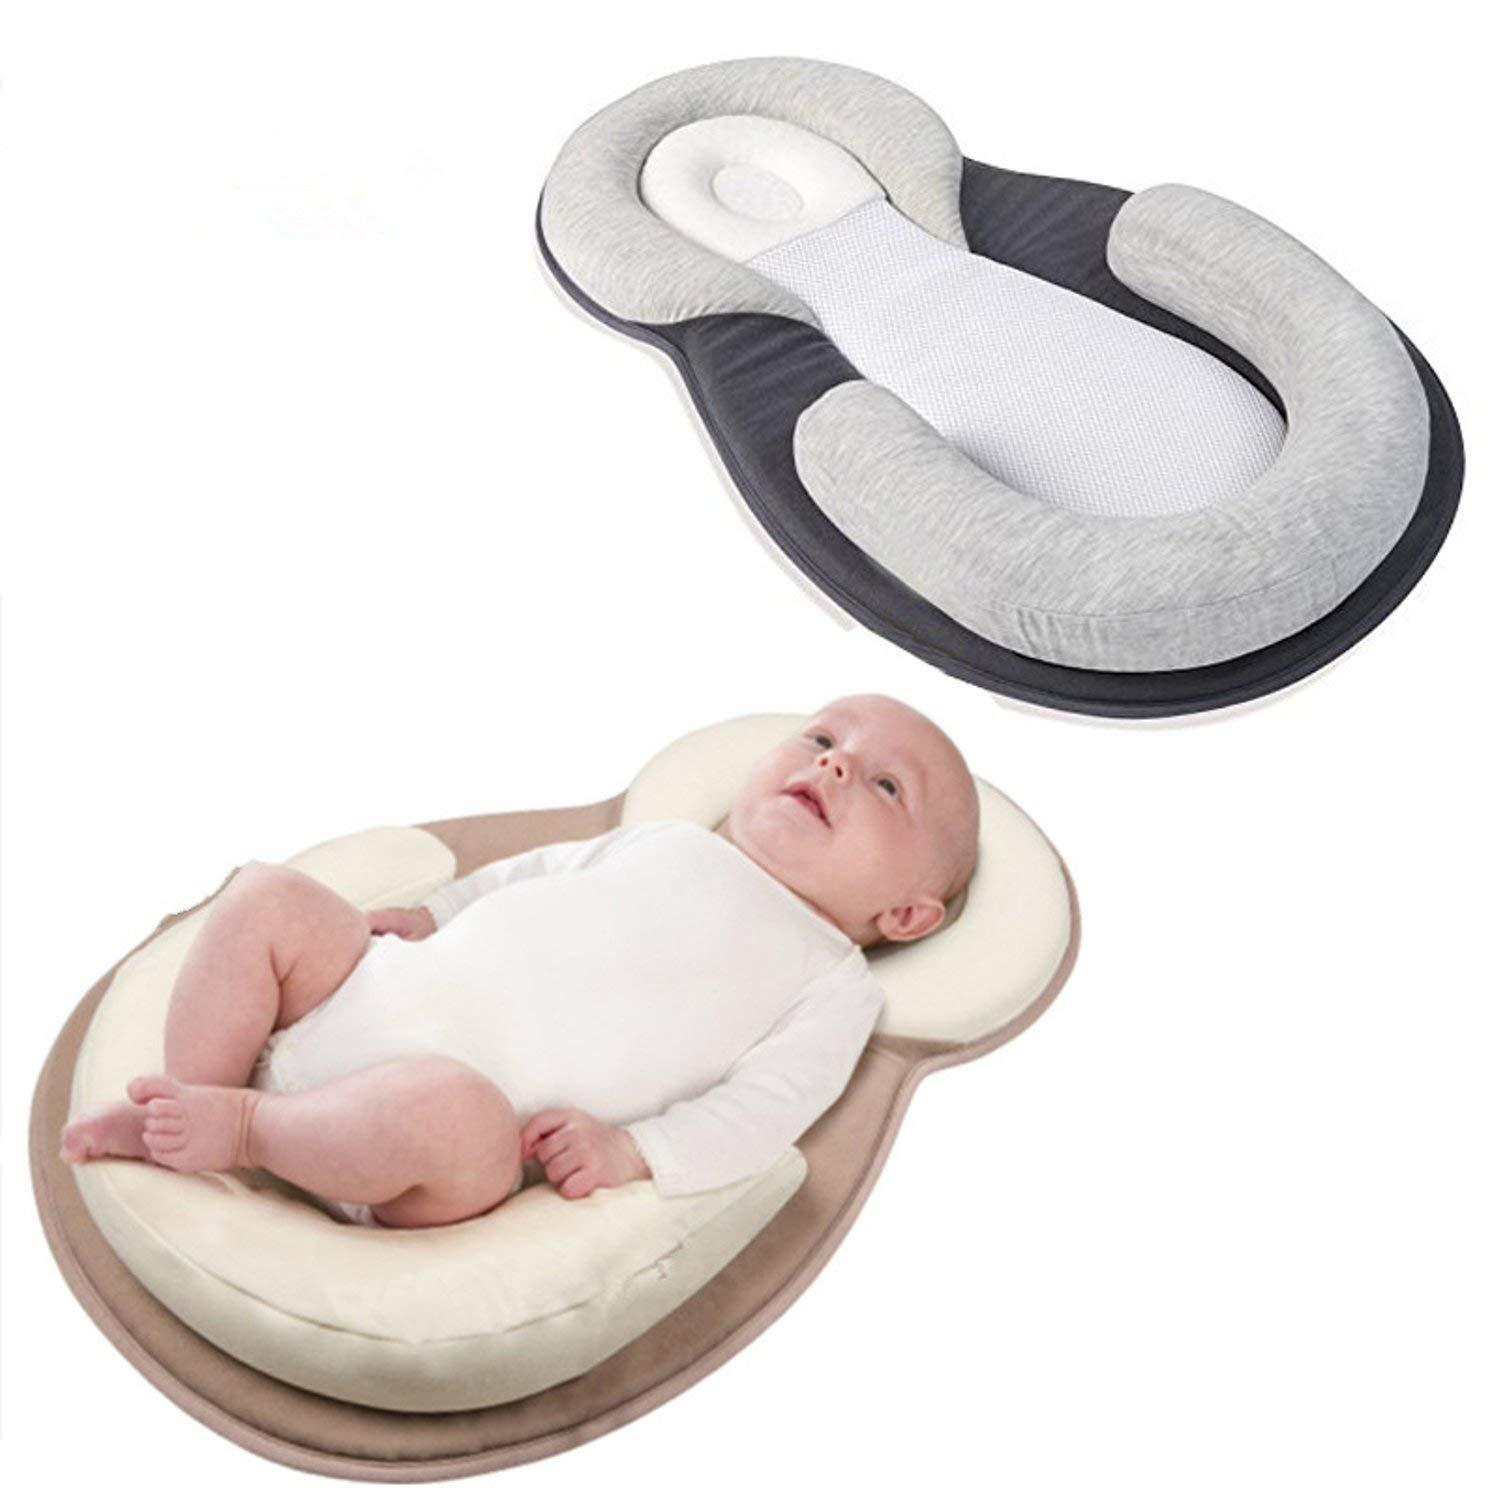 baby head shaping pillow and torticollis correction baby pillow for head shaping prevent newborn plagiocephaly syndrome perfect for baby to